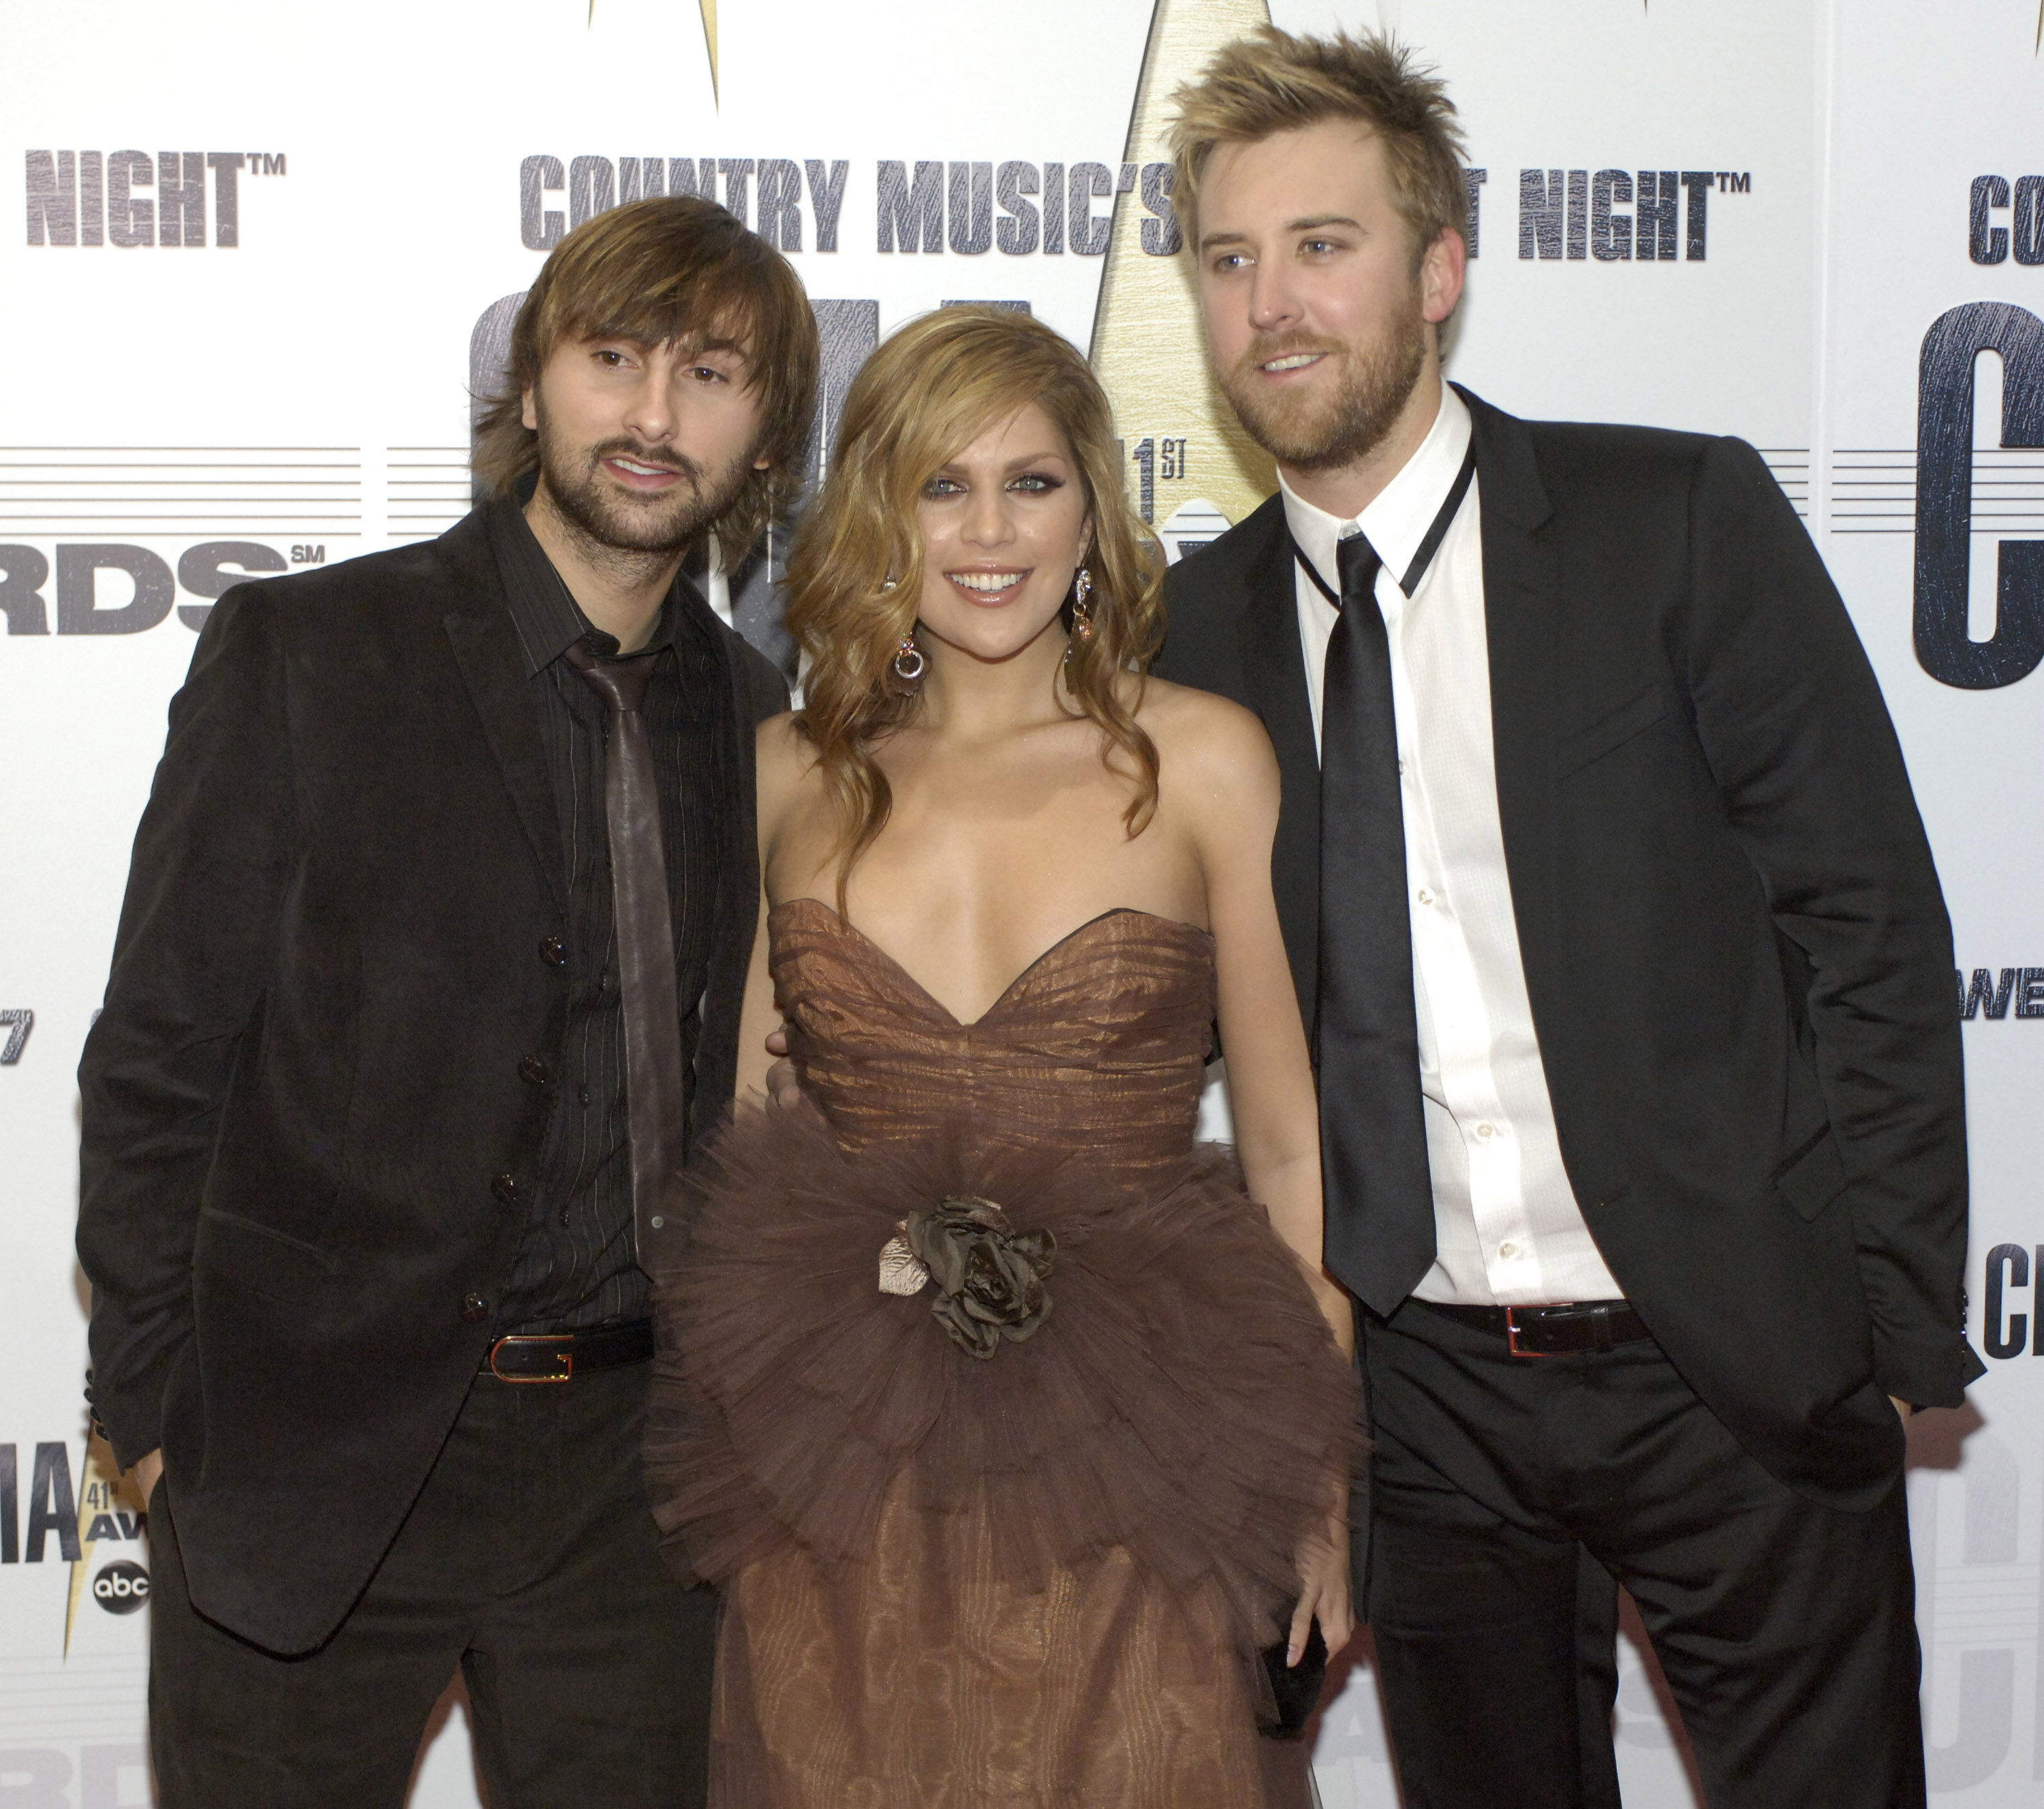 Musicians arrives at the 41st Annual CMA Awards at the Sommet Center on November 7, 2007 in Nashville TN; Photo by Frank Mullen/WireImage